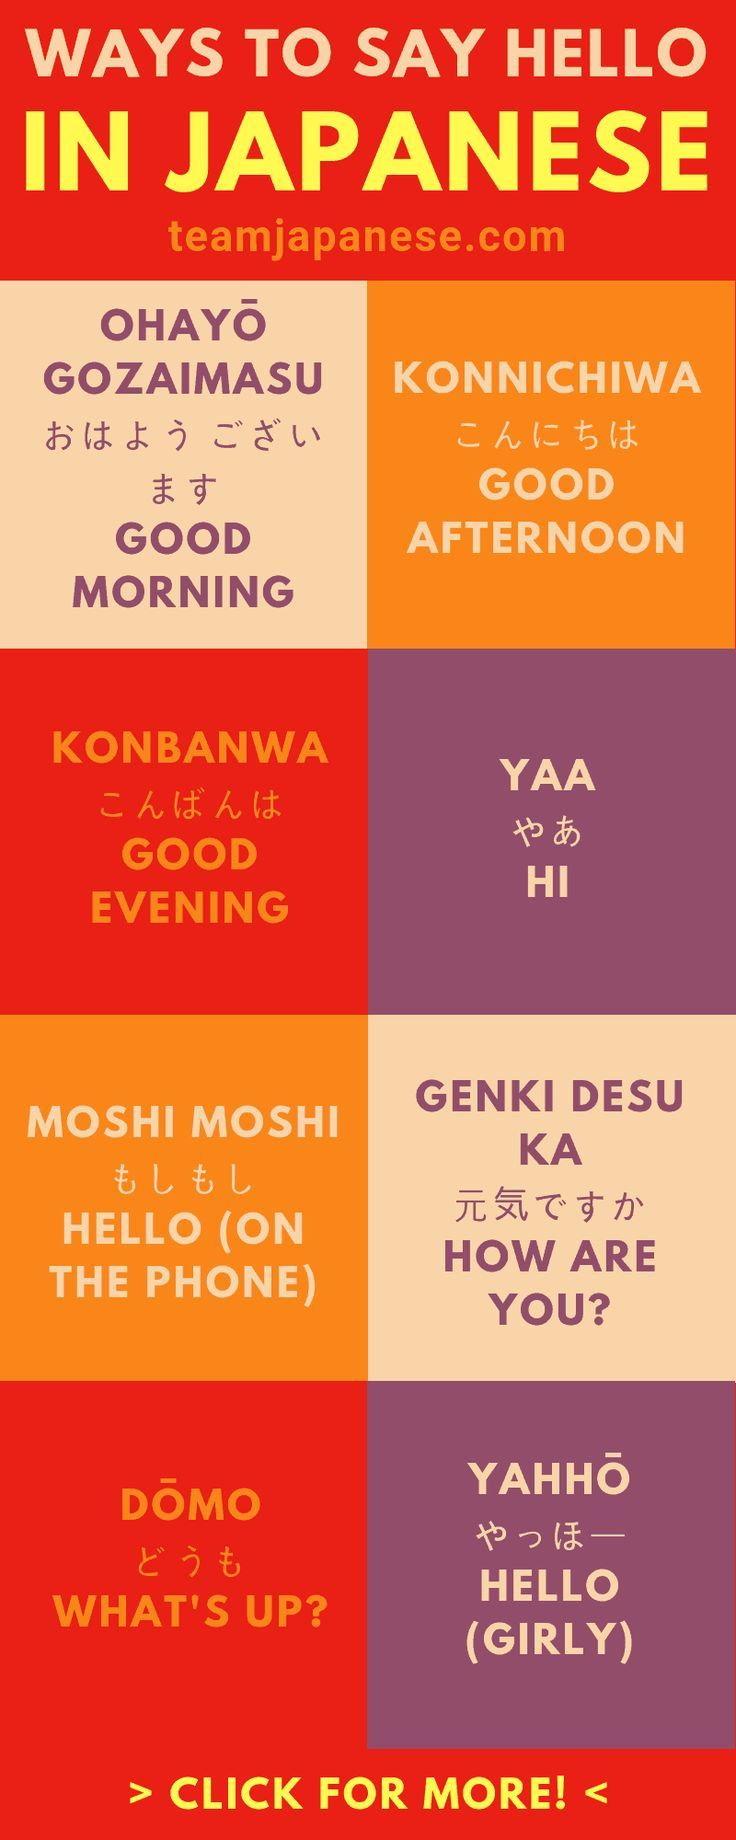 19 Different Ways to Say Hello in Japanese - Team Japanese